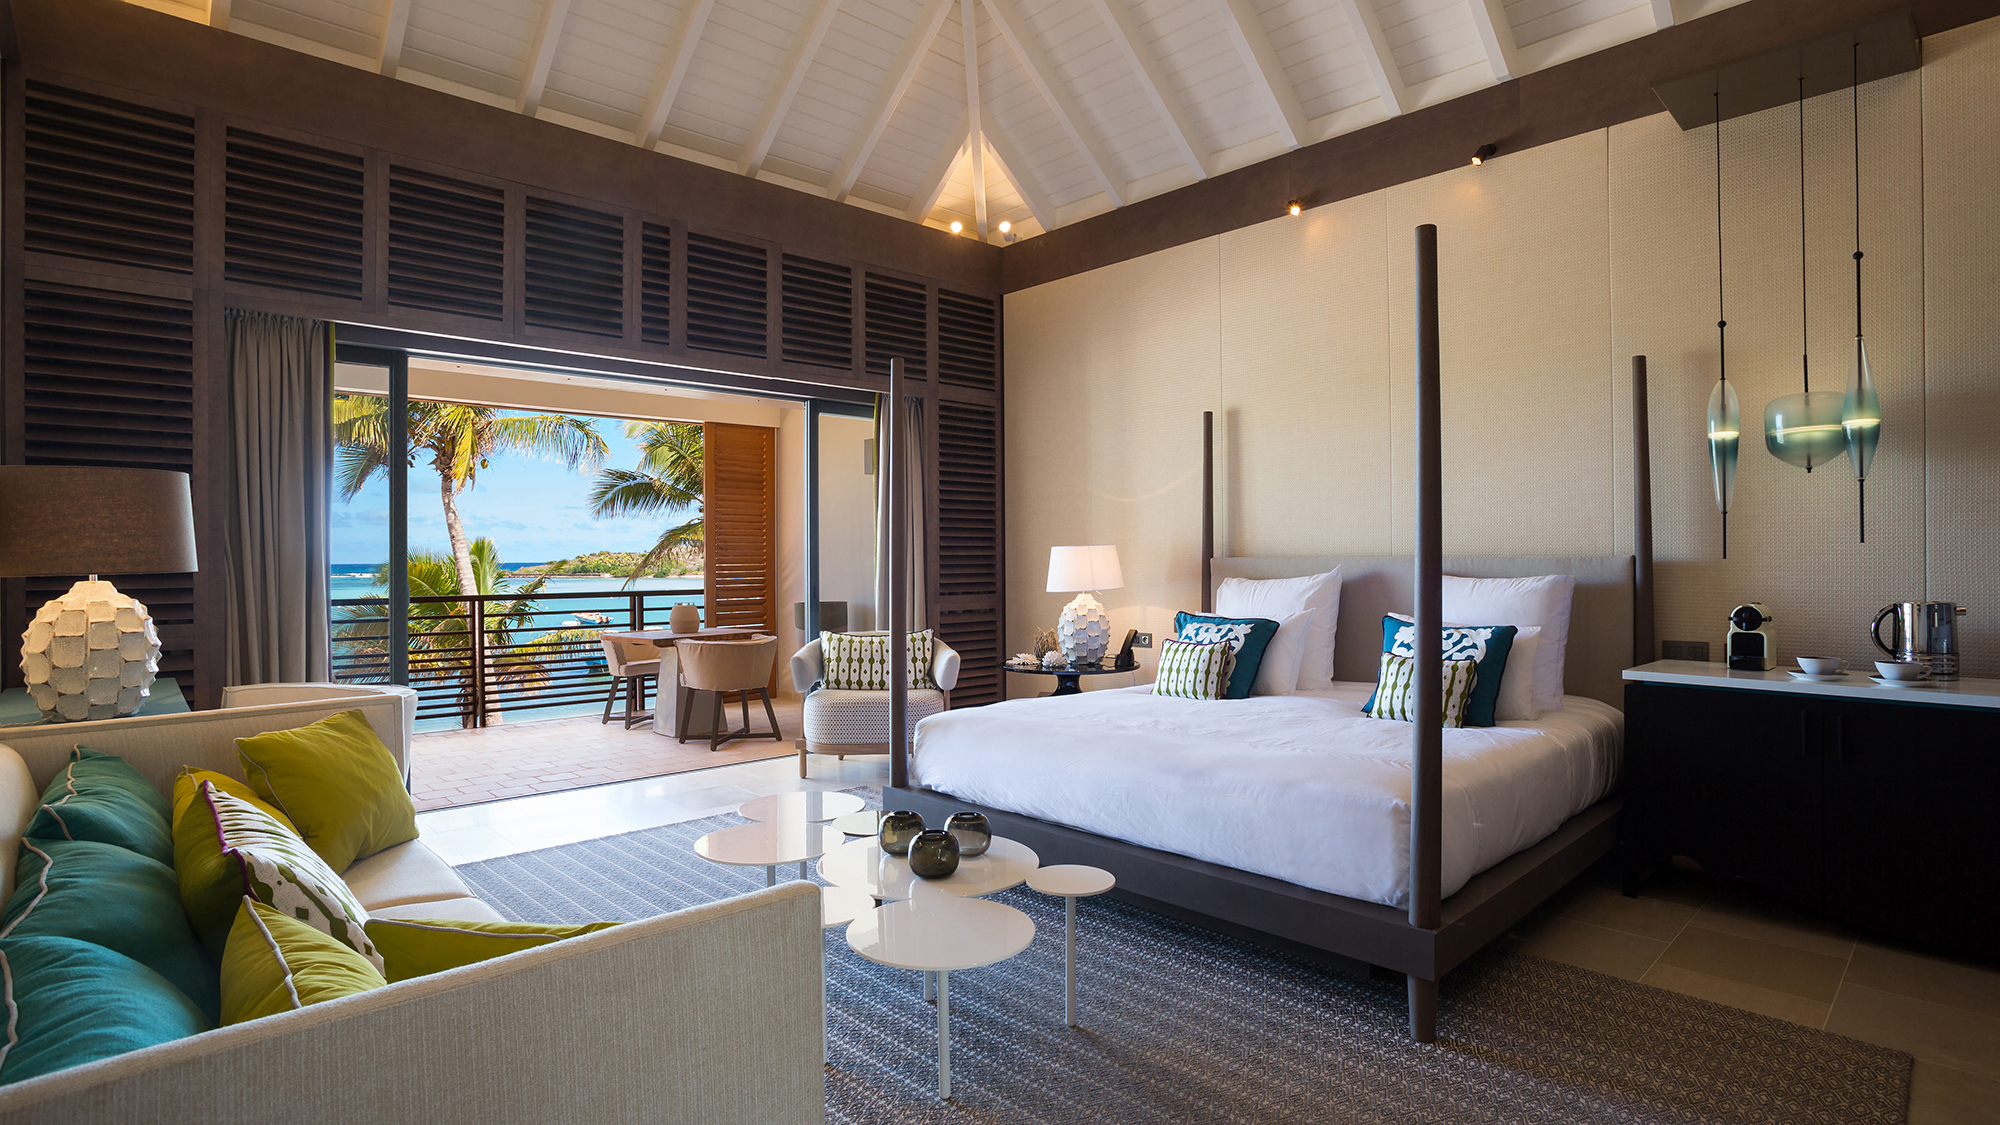 le barthelemy, new luxury hotel, to open on st. barts: travel weekly